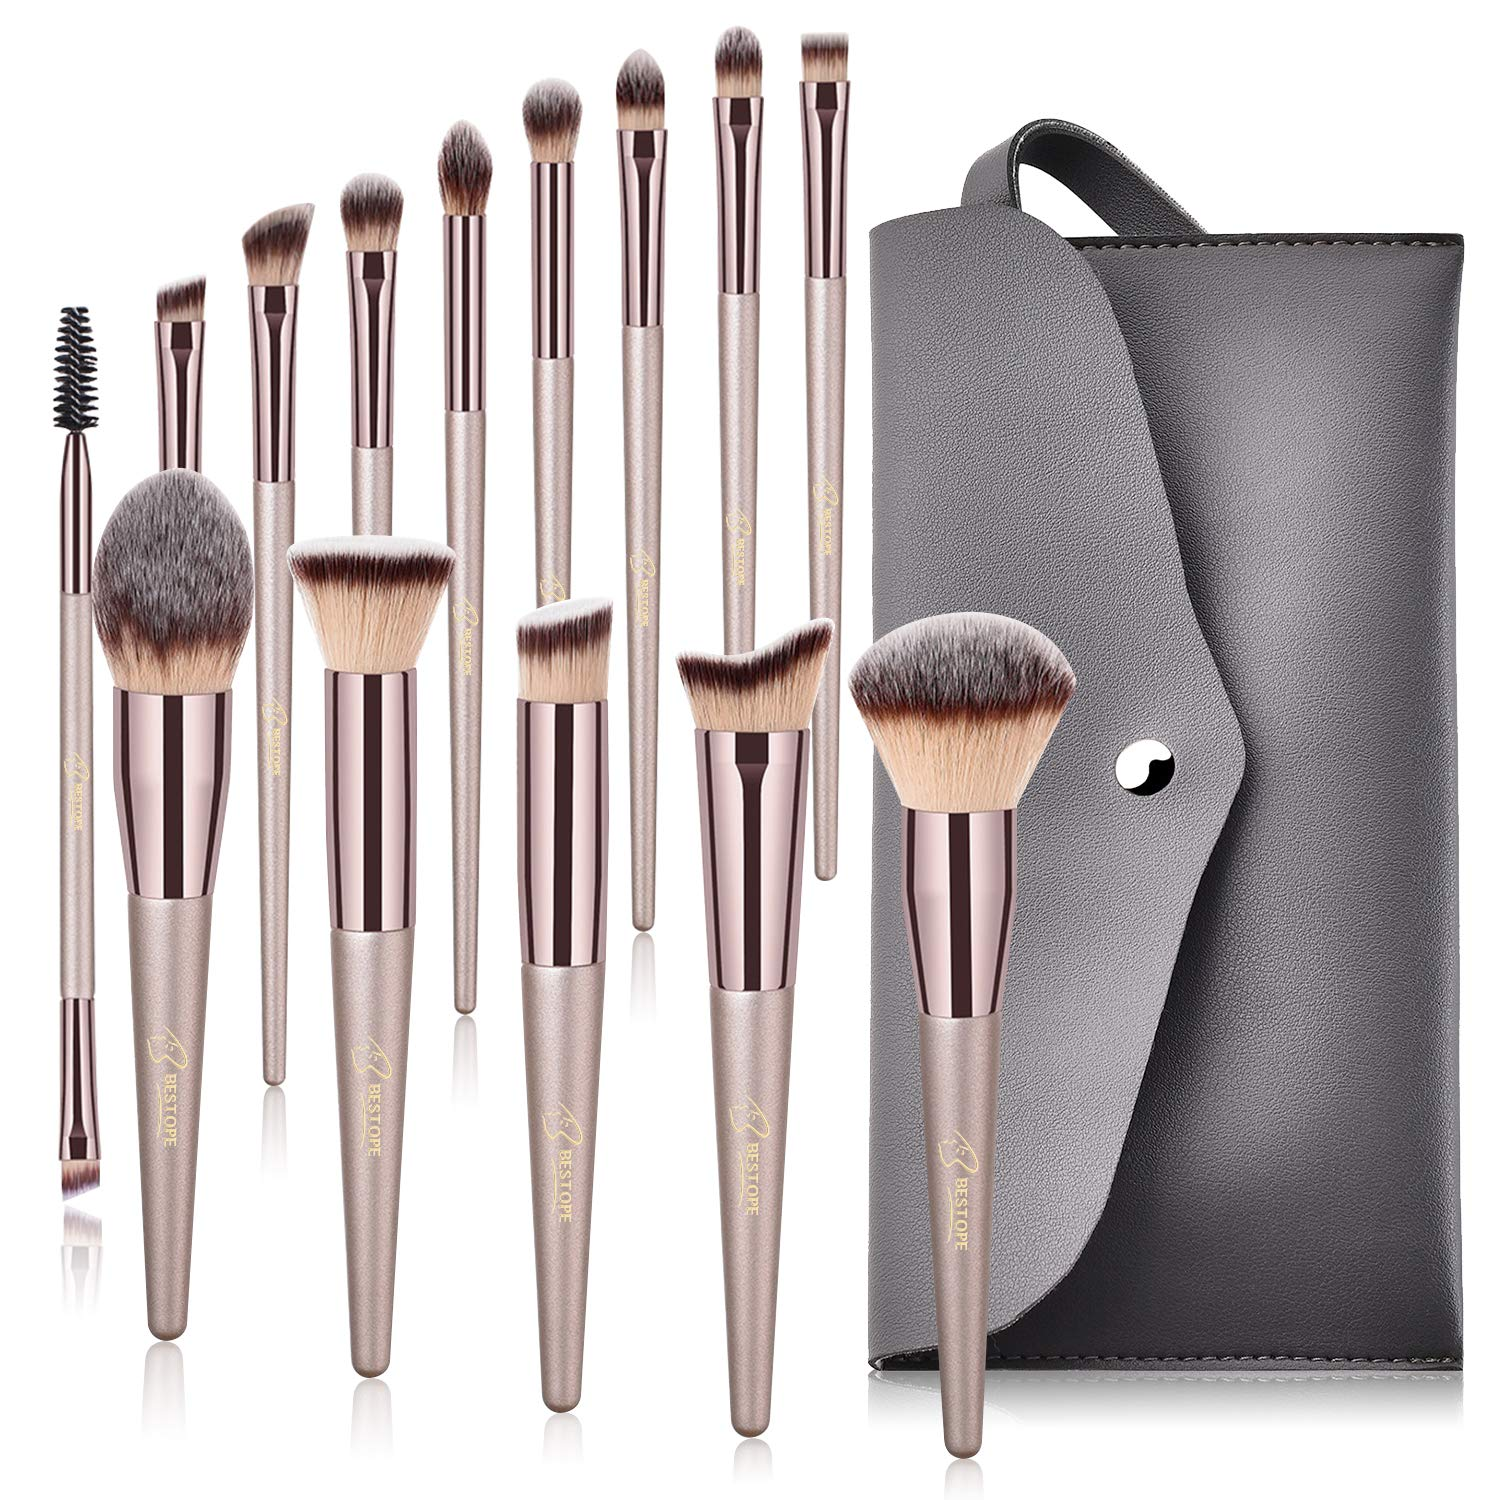 14 Pcs Premium Synthetic Make up Brushes Champagne Gold Brushes Set